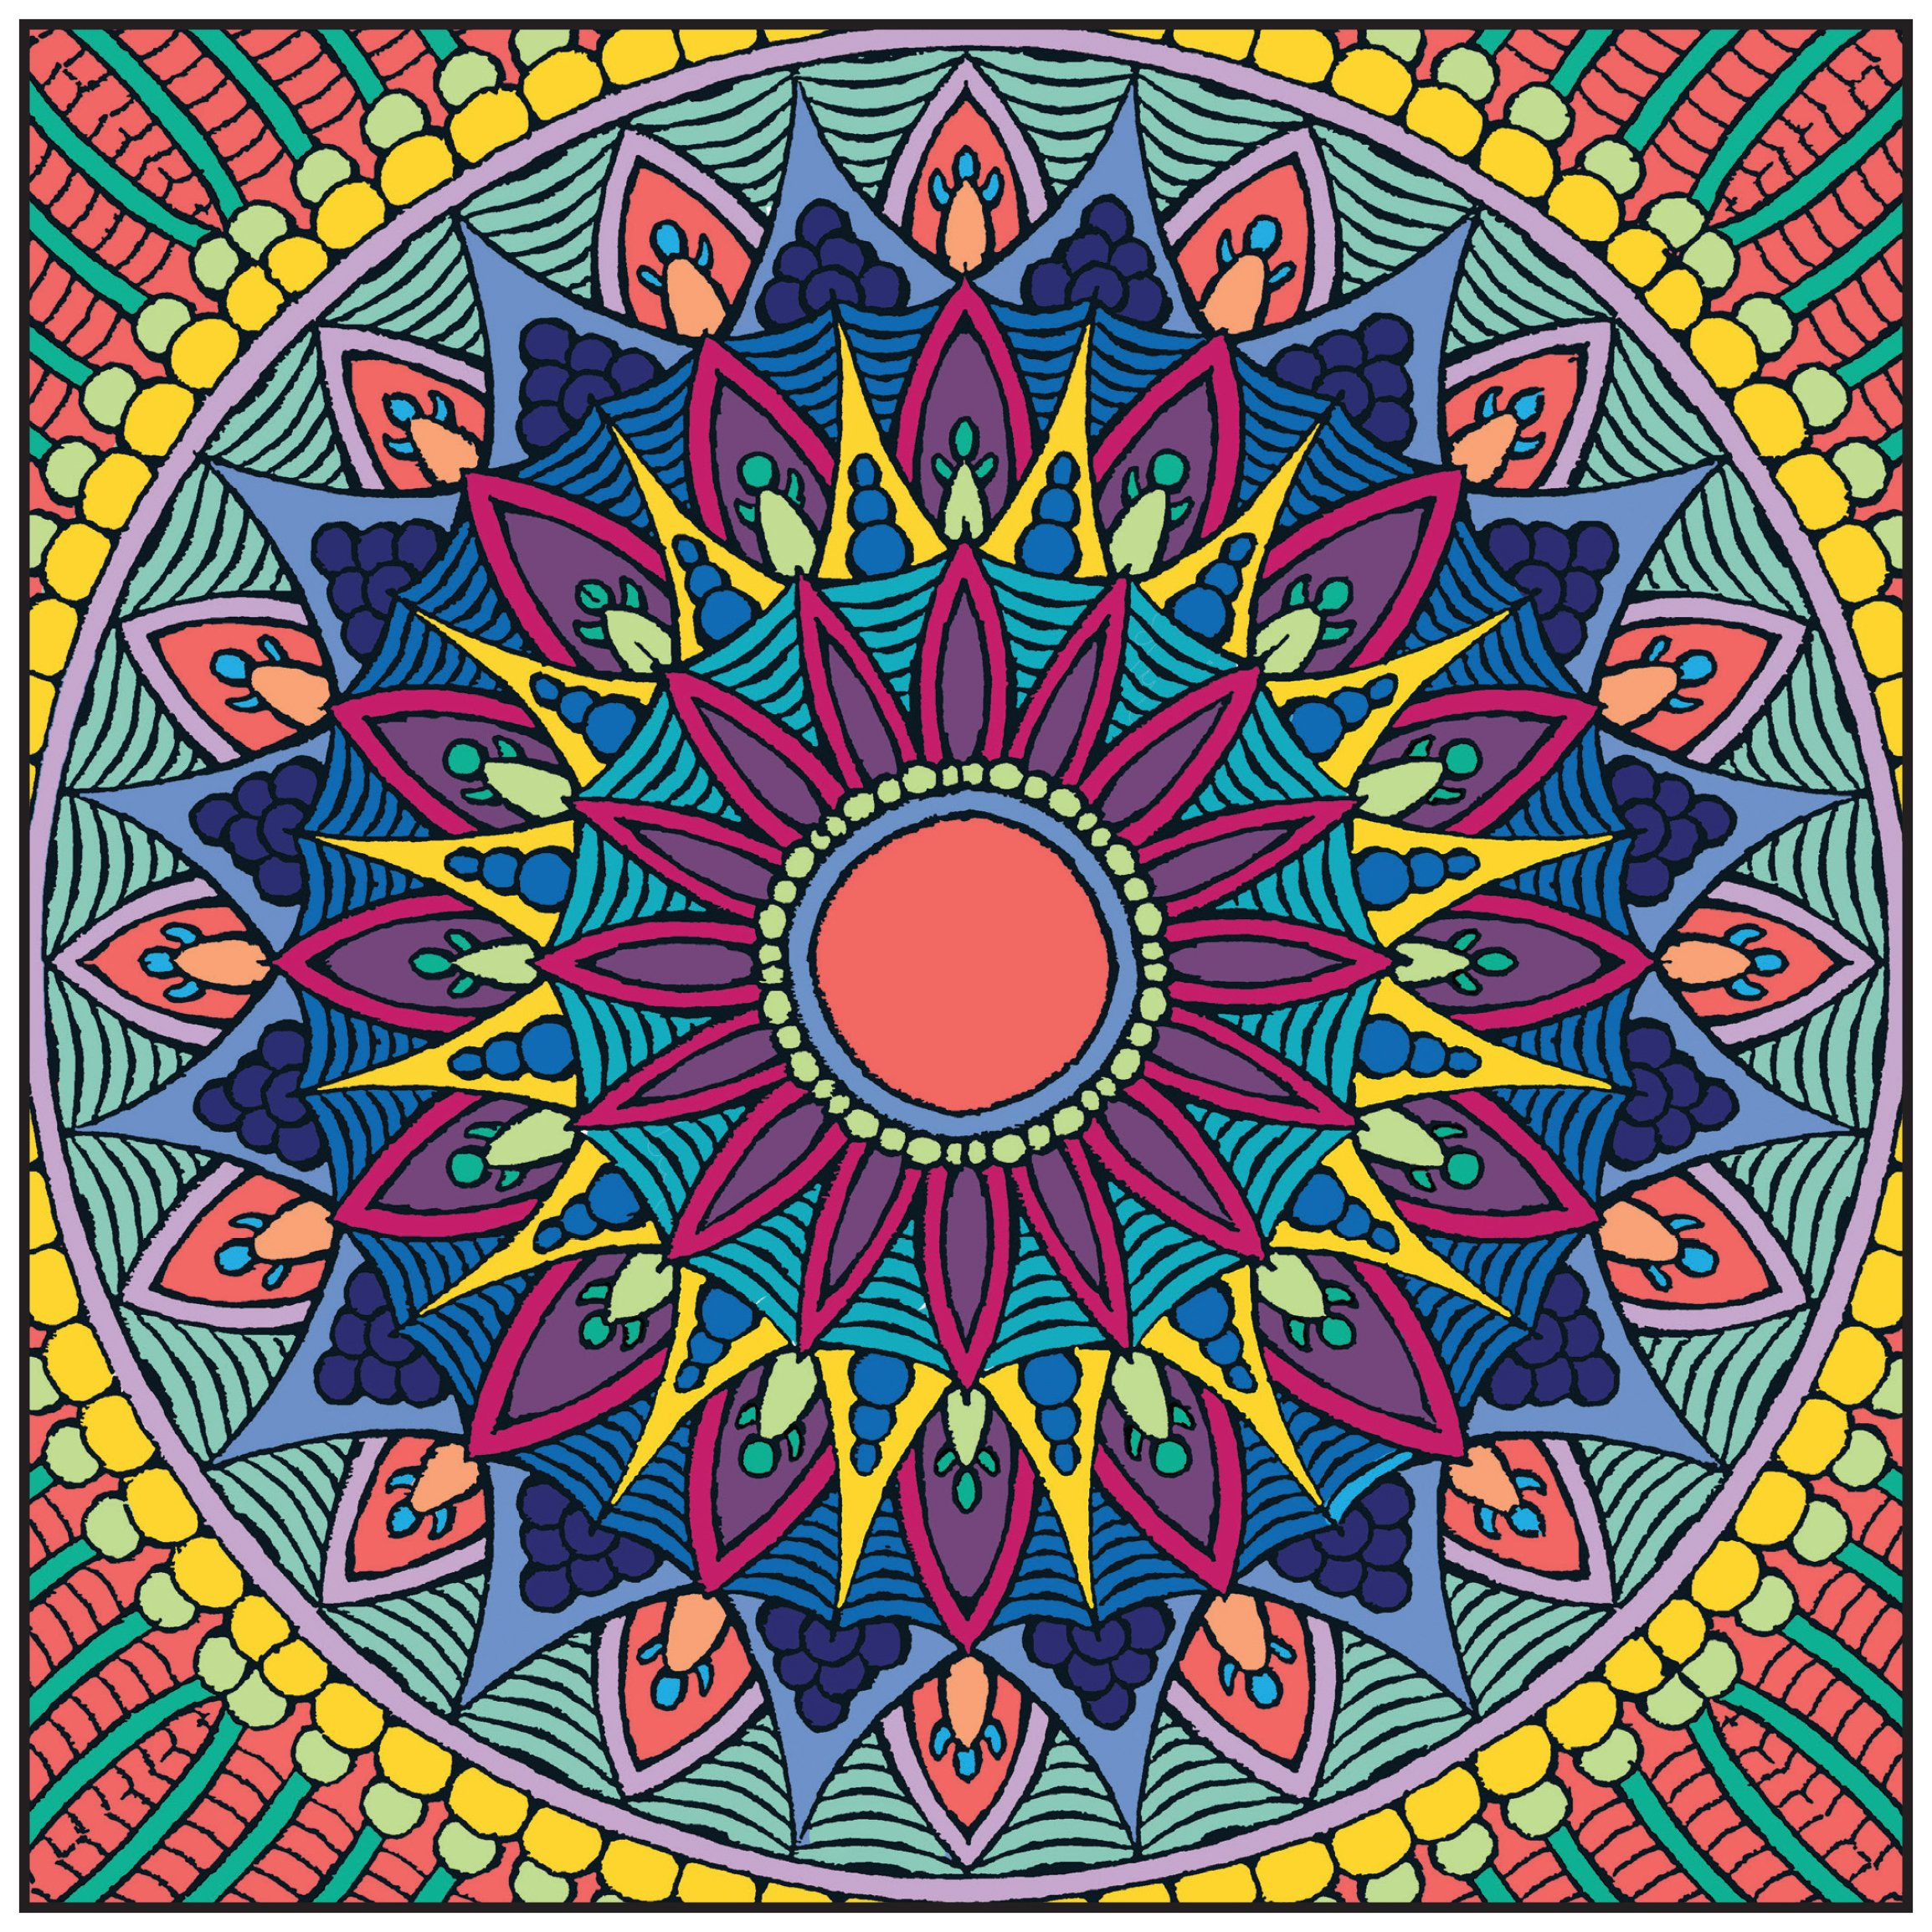 Coloring book color of art - Amazon Com Mandalas Adult Coloring Book With Bonus Relaxation Music Cd Included Color With Music 9781988137032 Newbourne Media Books